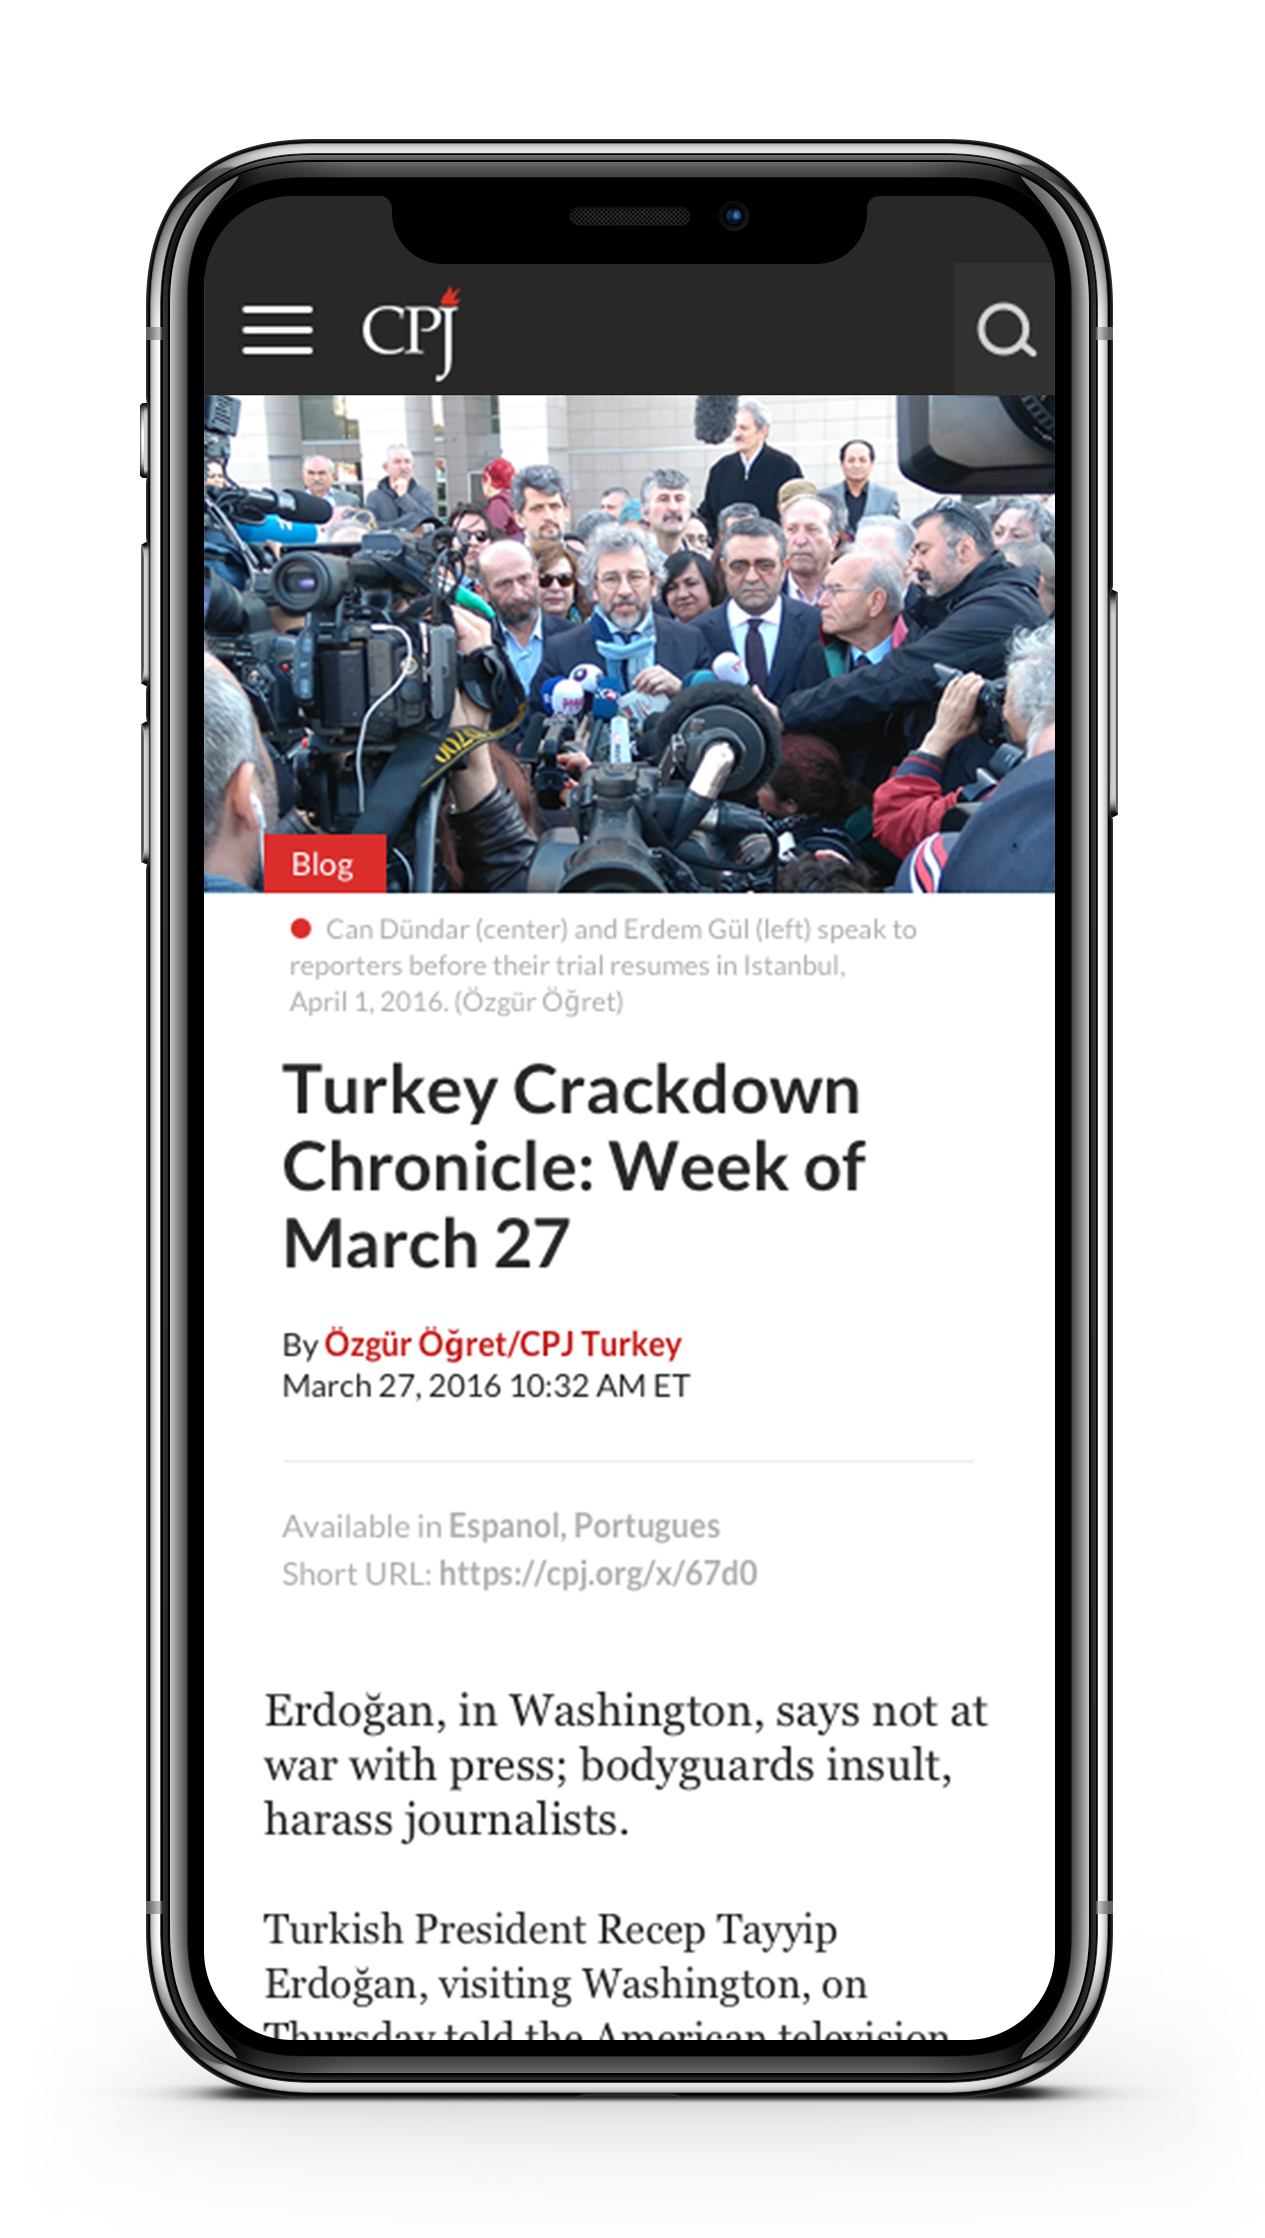 cpj-mockup_article-mobile.jpg